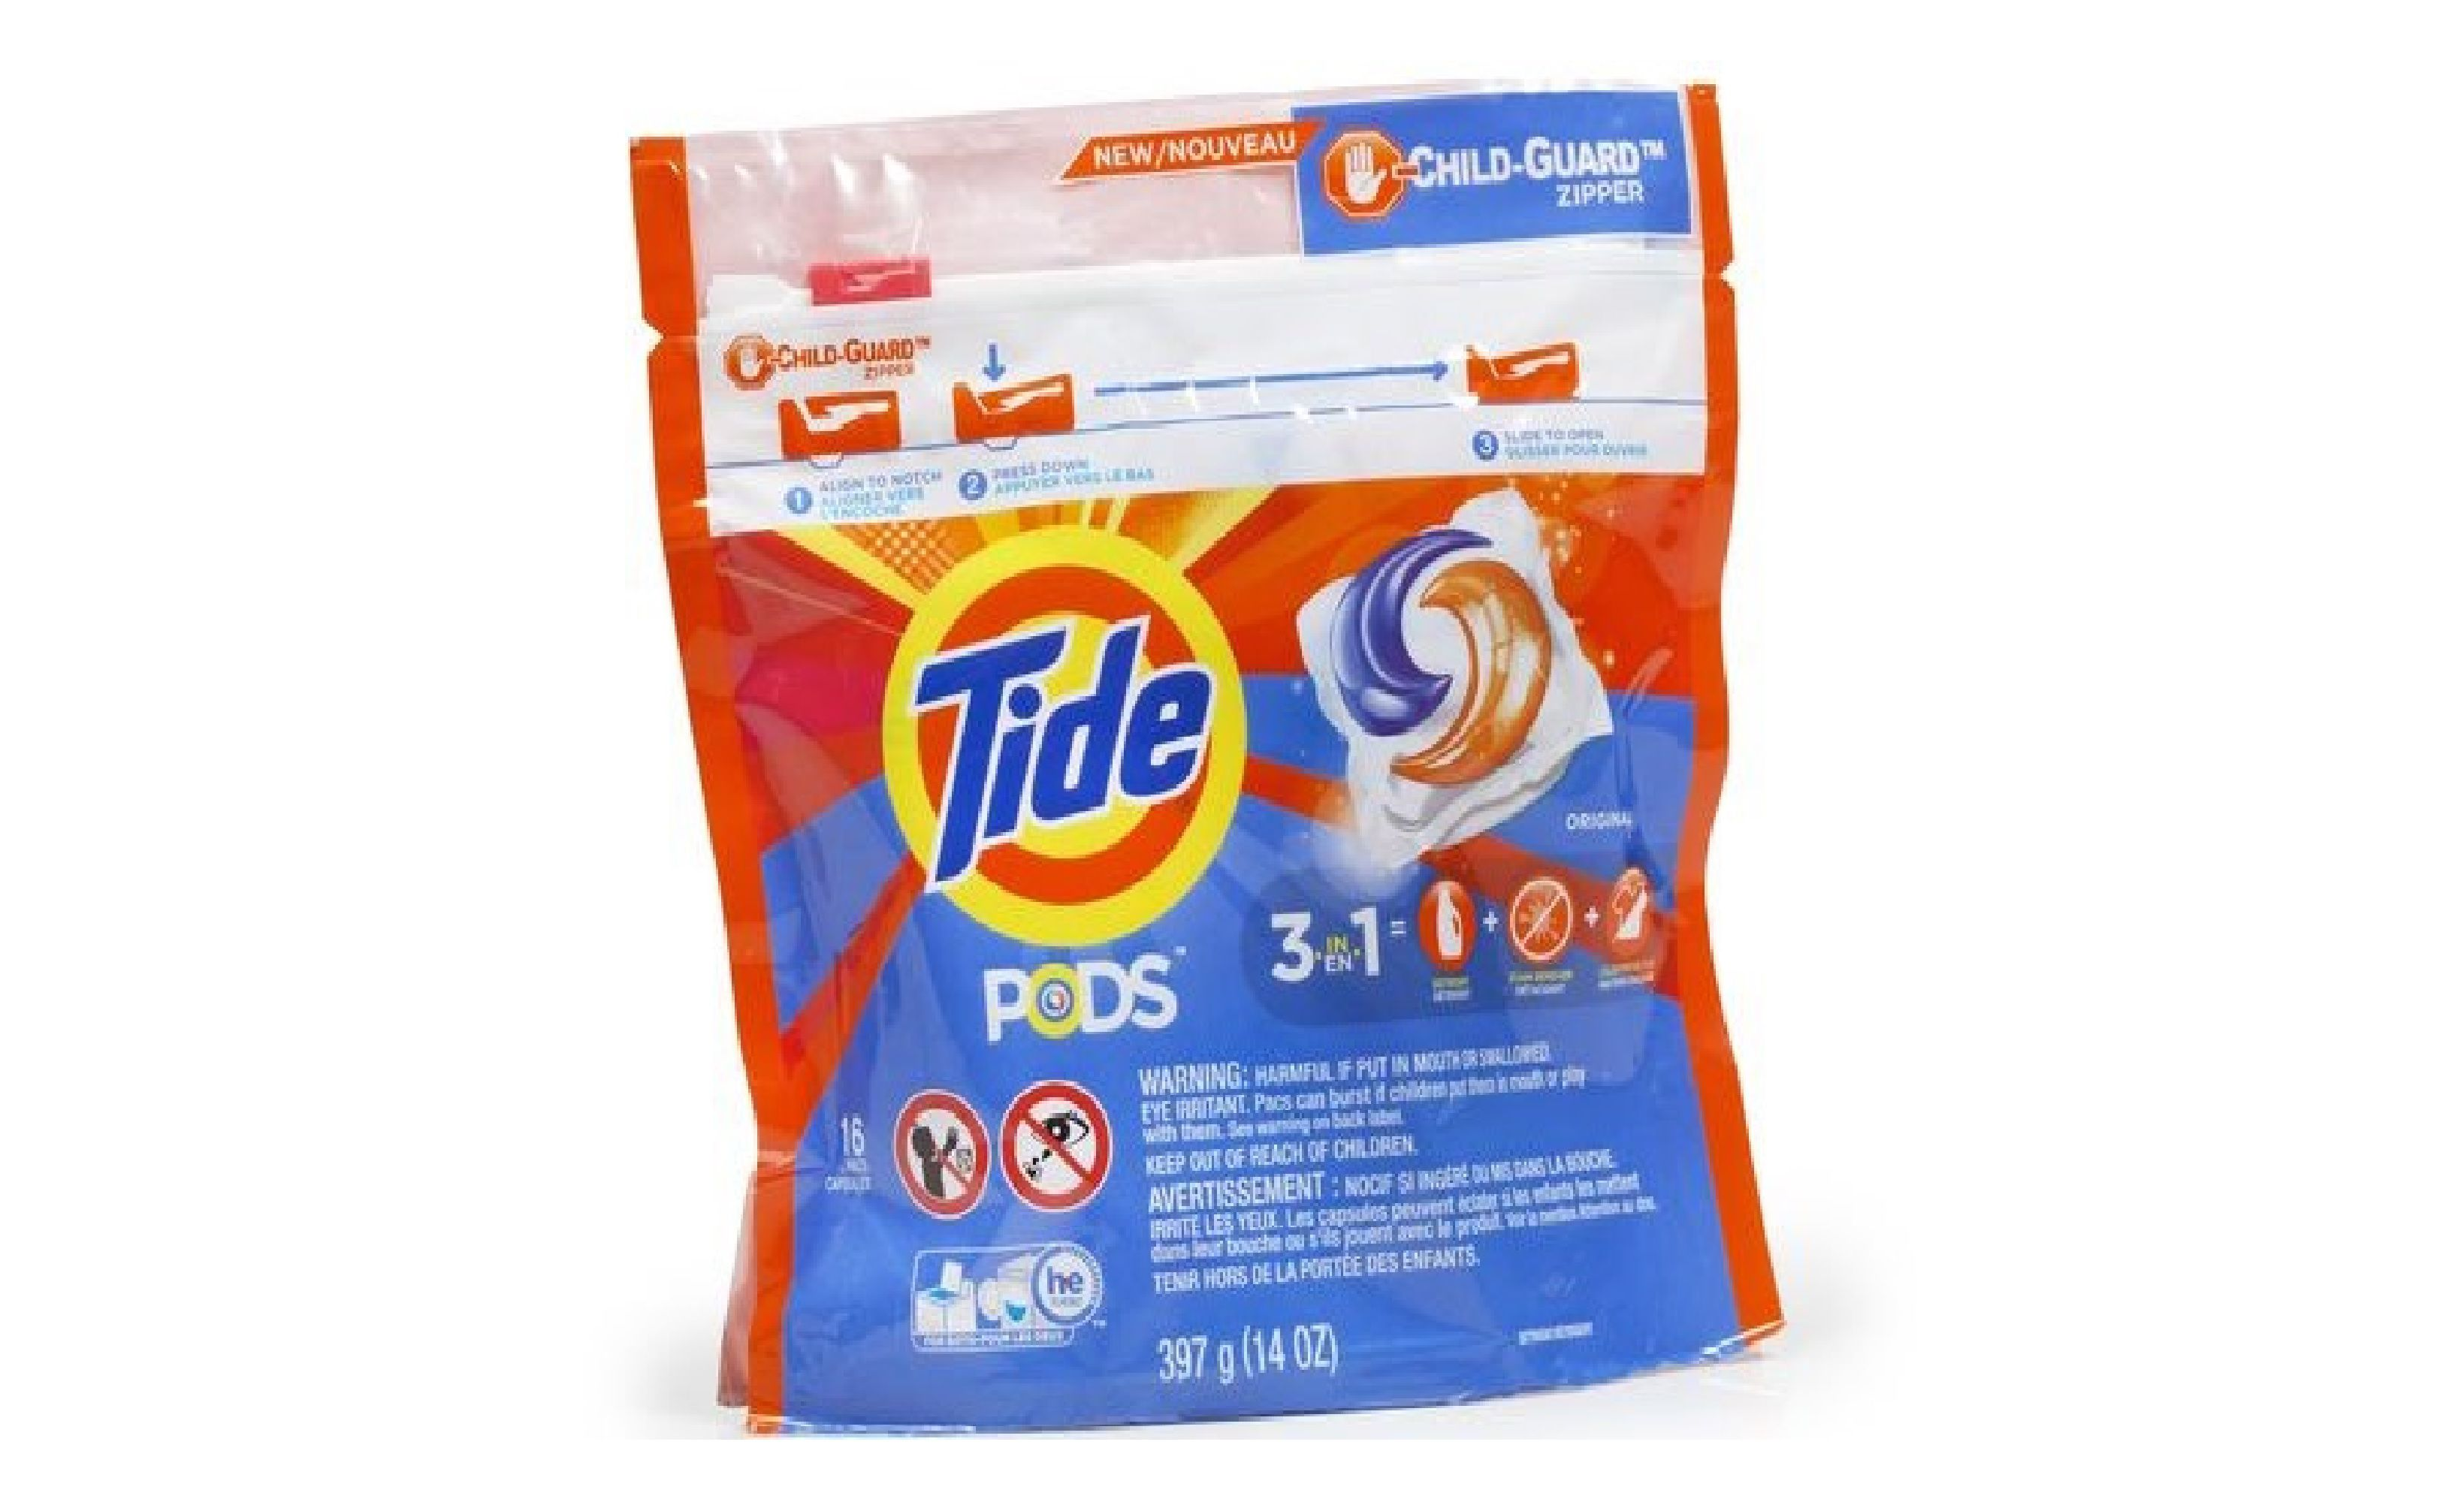 Pods Quote Tide Pods Laundry Detergent Product Review